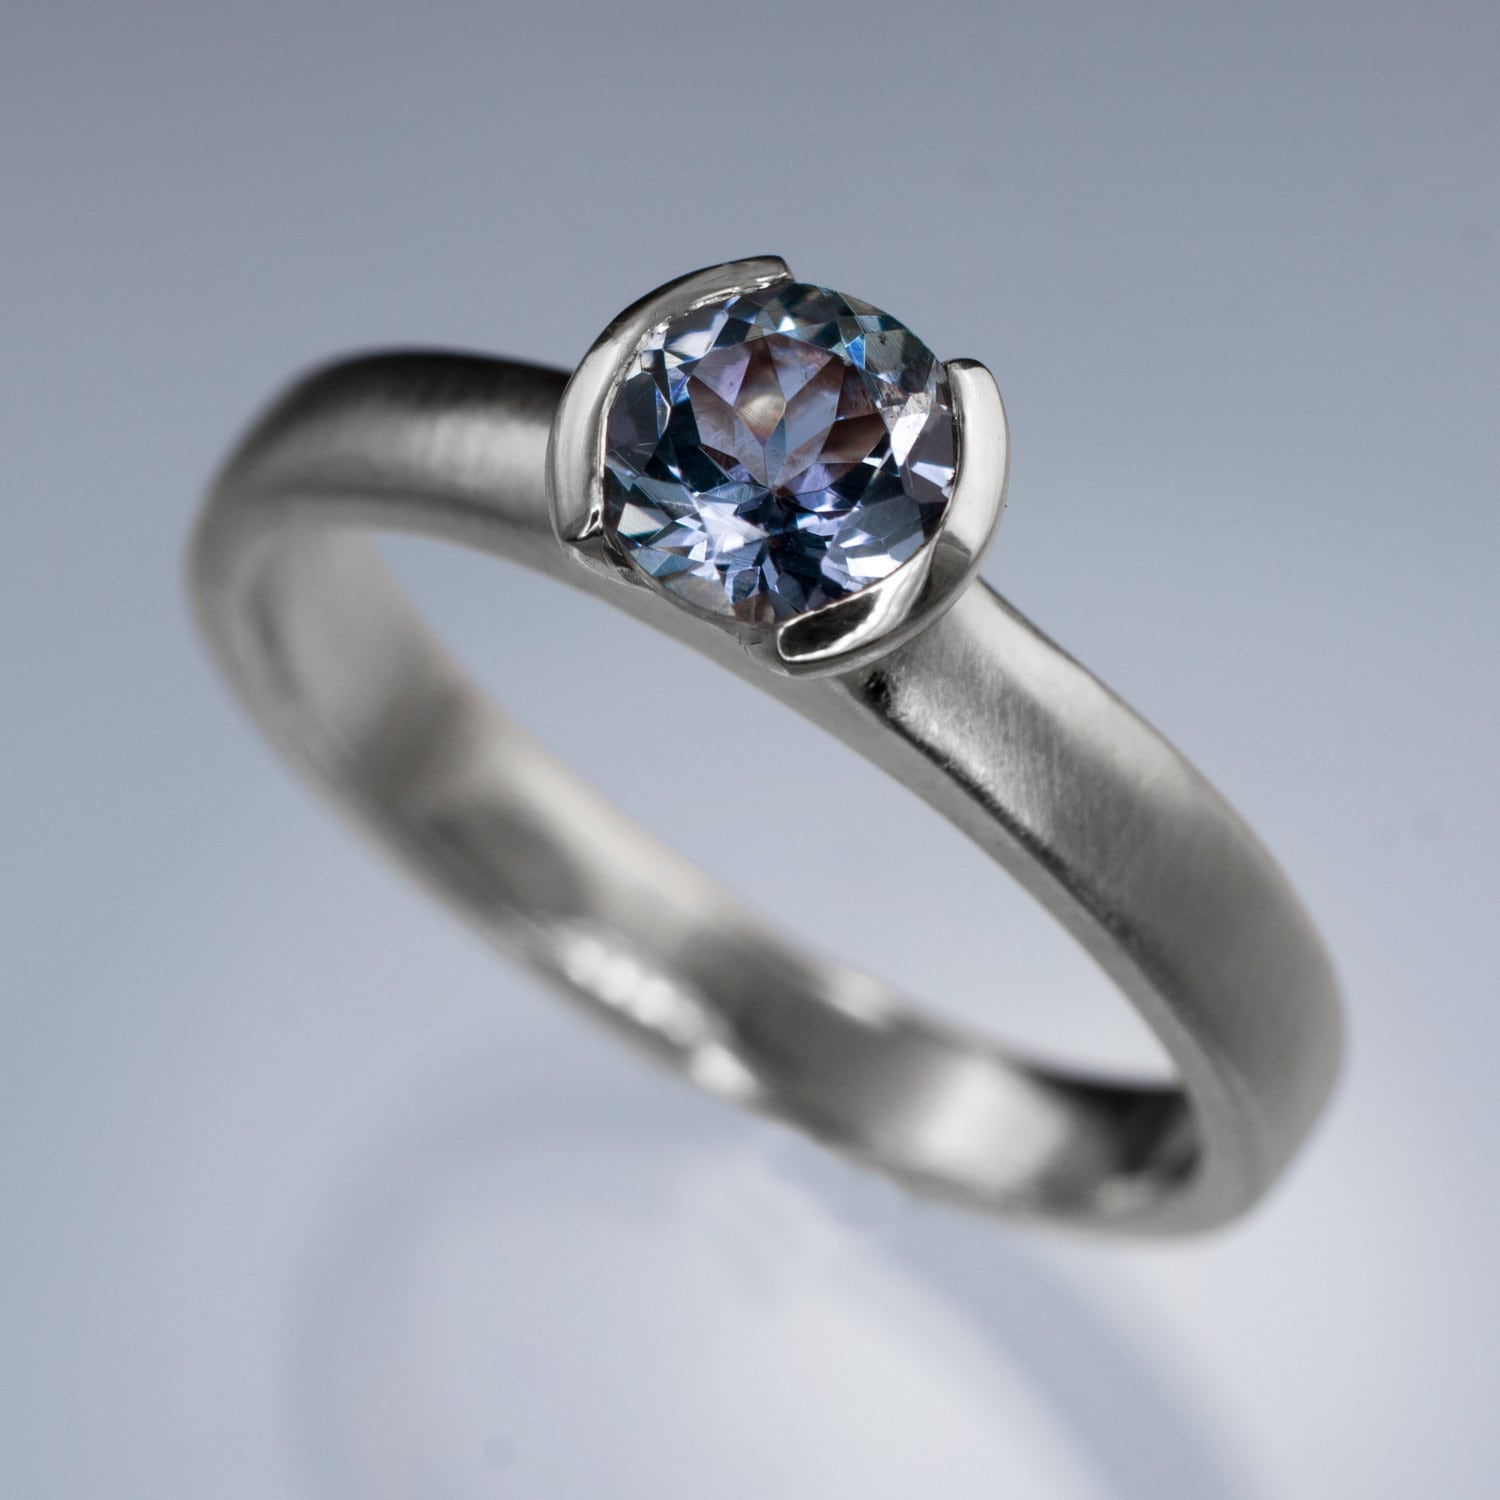 jewellery copy rings london collections bespoke tanzanite and products gold jana reinhardt white ring engagement